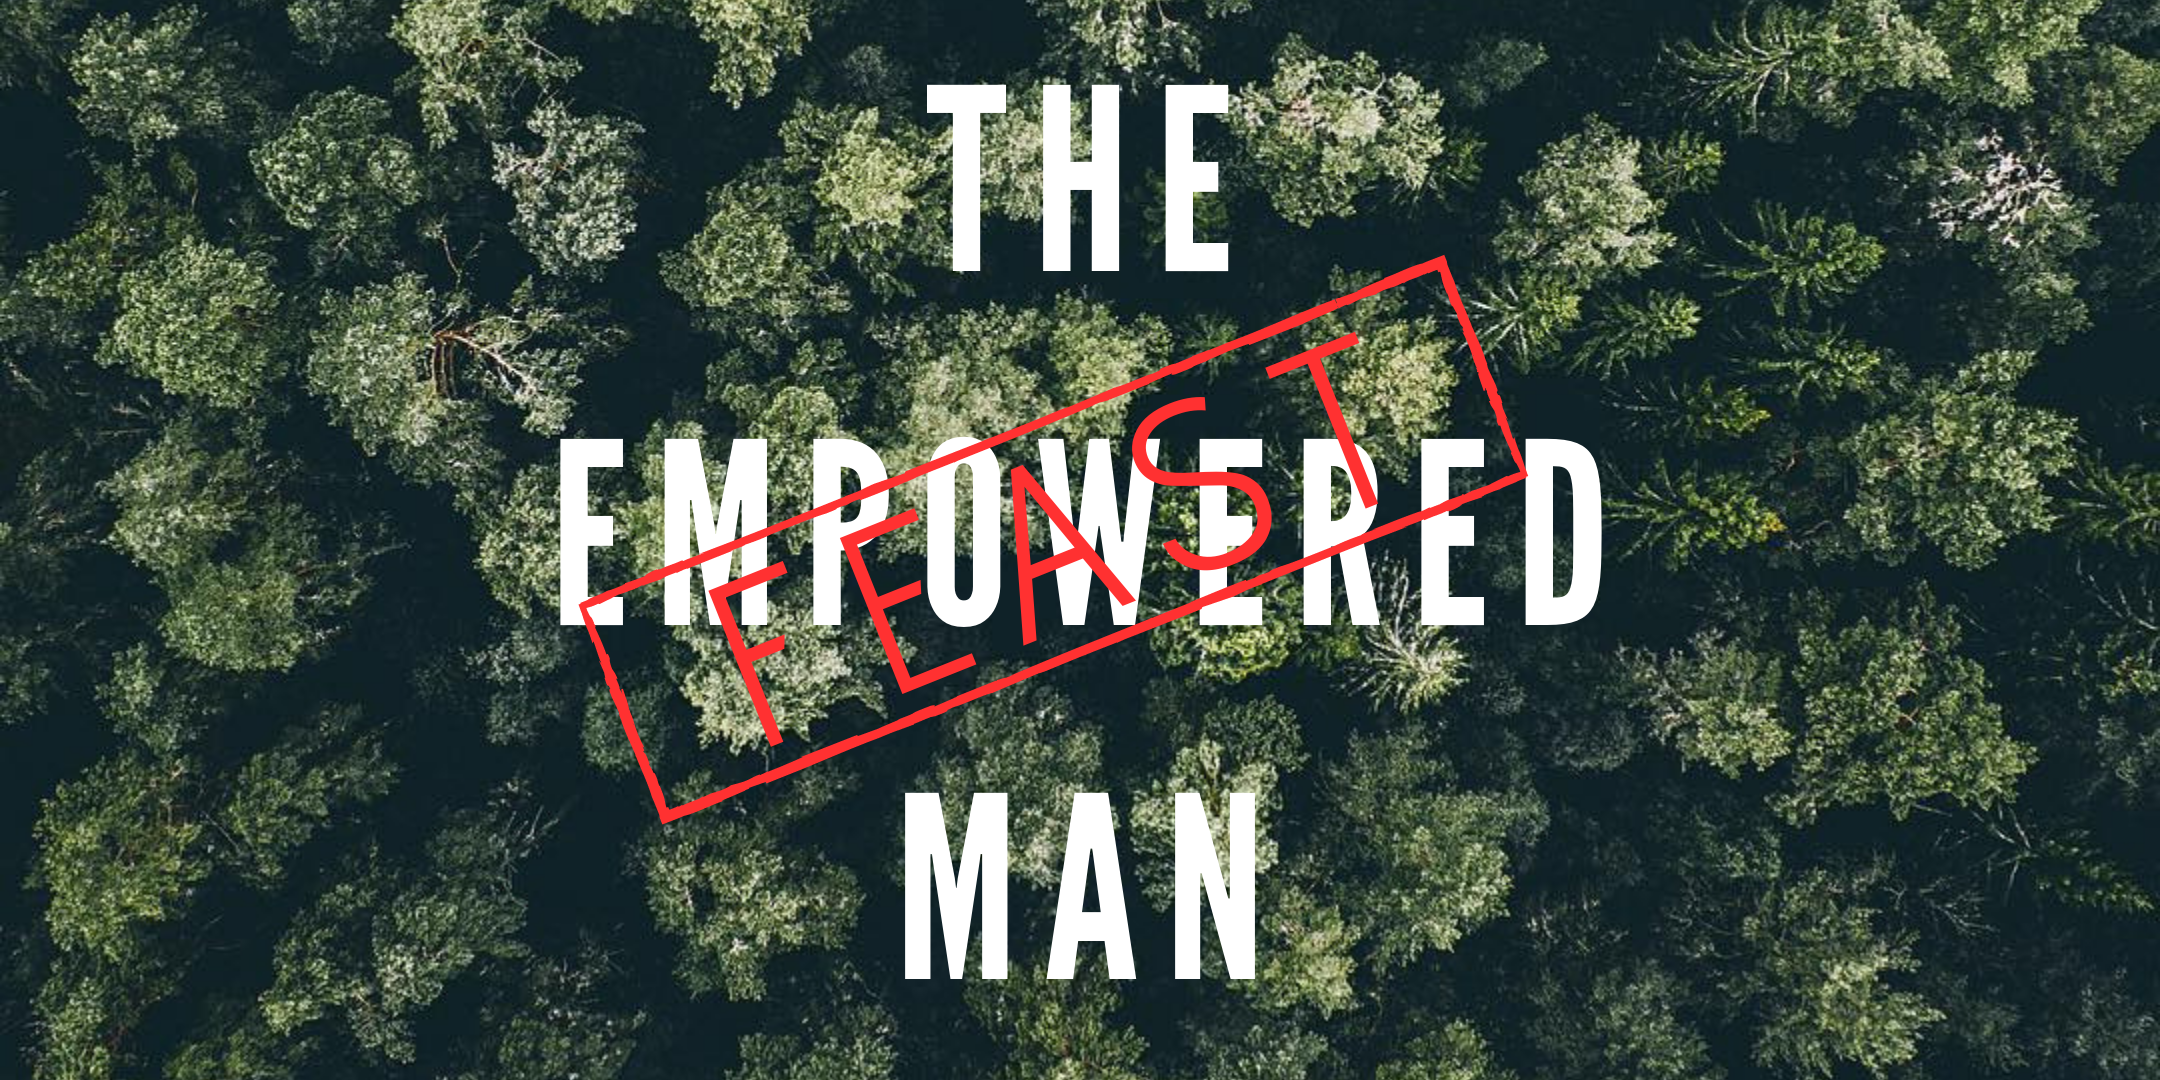 THE EMPOWERED MAN (1).png